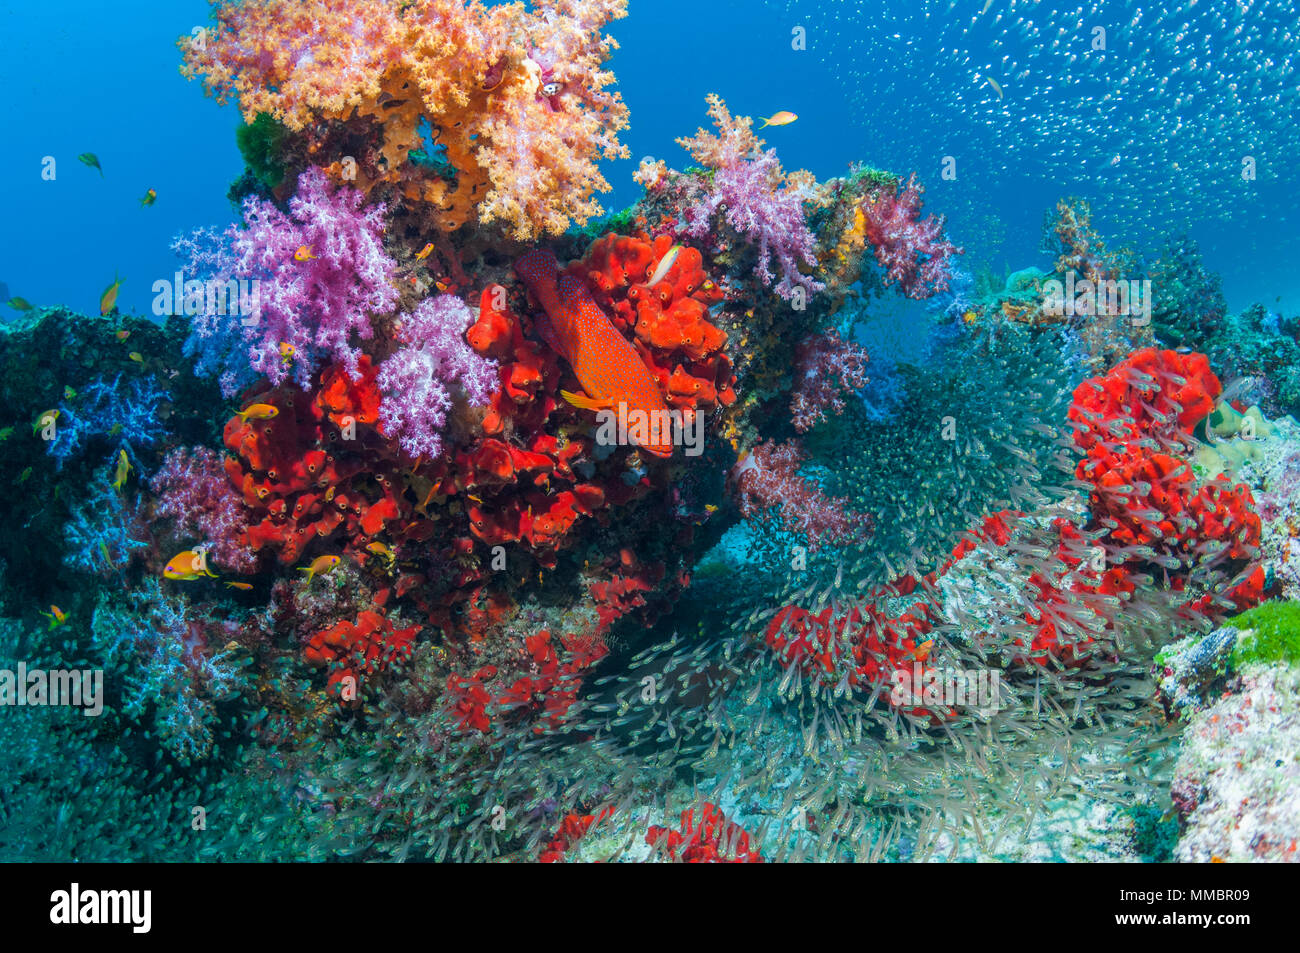 Coral reef with soft corals [Dendronephthya sp.], encrusting sponges and Slender cardinalfish.  Similan Islands, Andaman Sea, Thailand - Stock Image